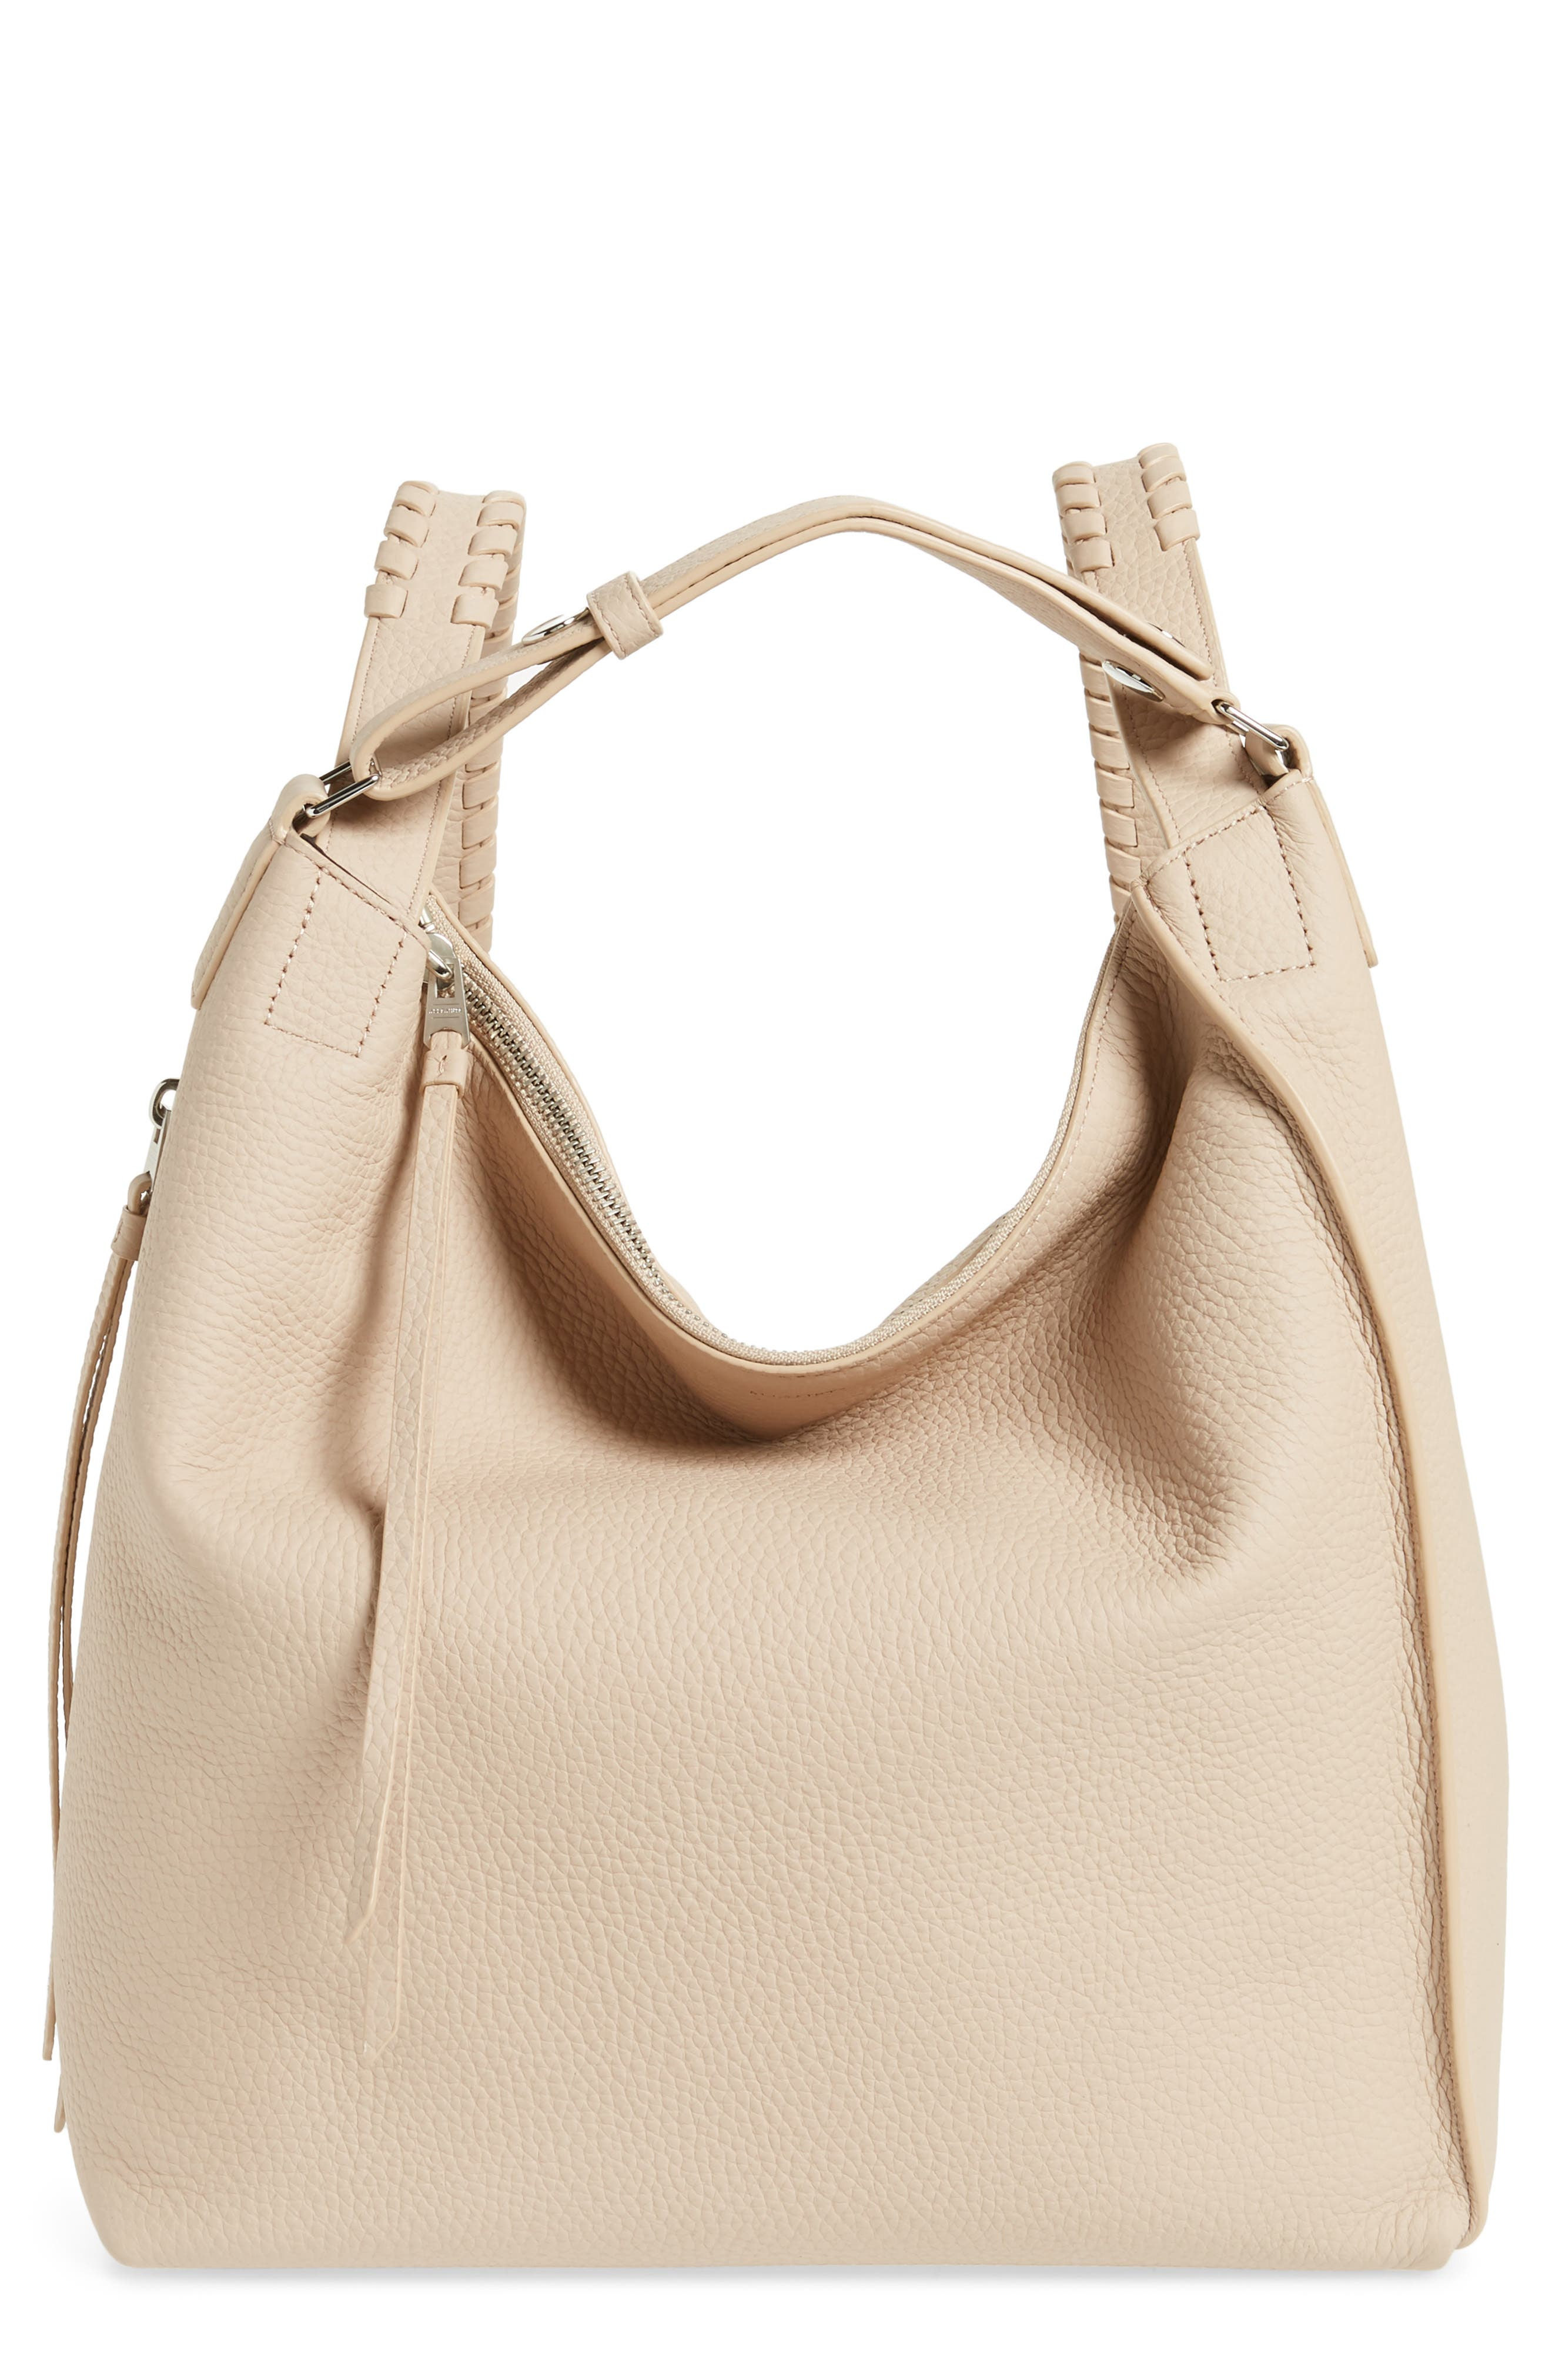 SMALL KITA CONVERTIBLE LEATHER BACKPACK - BEIGE